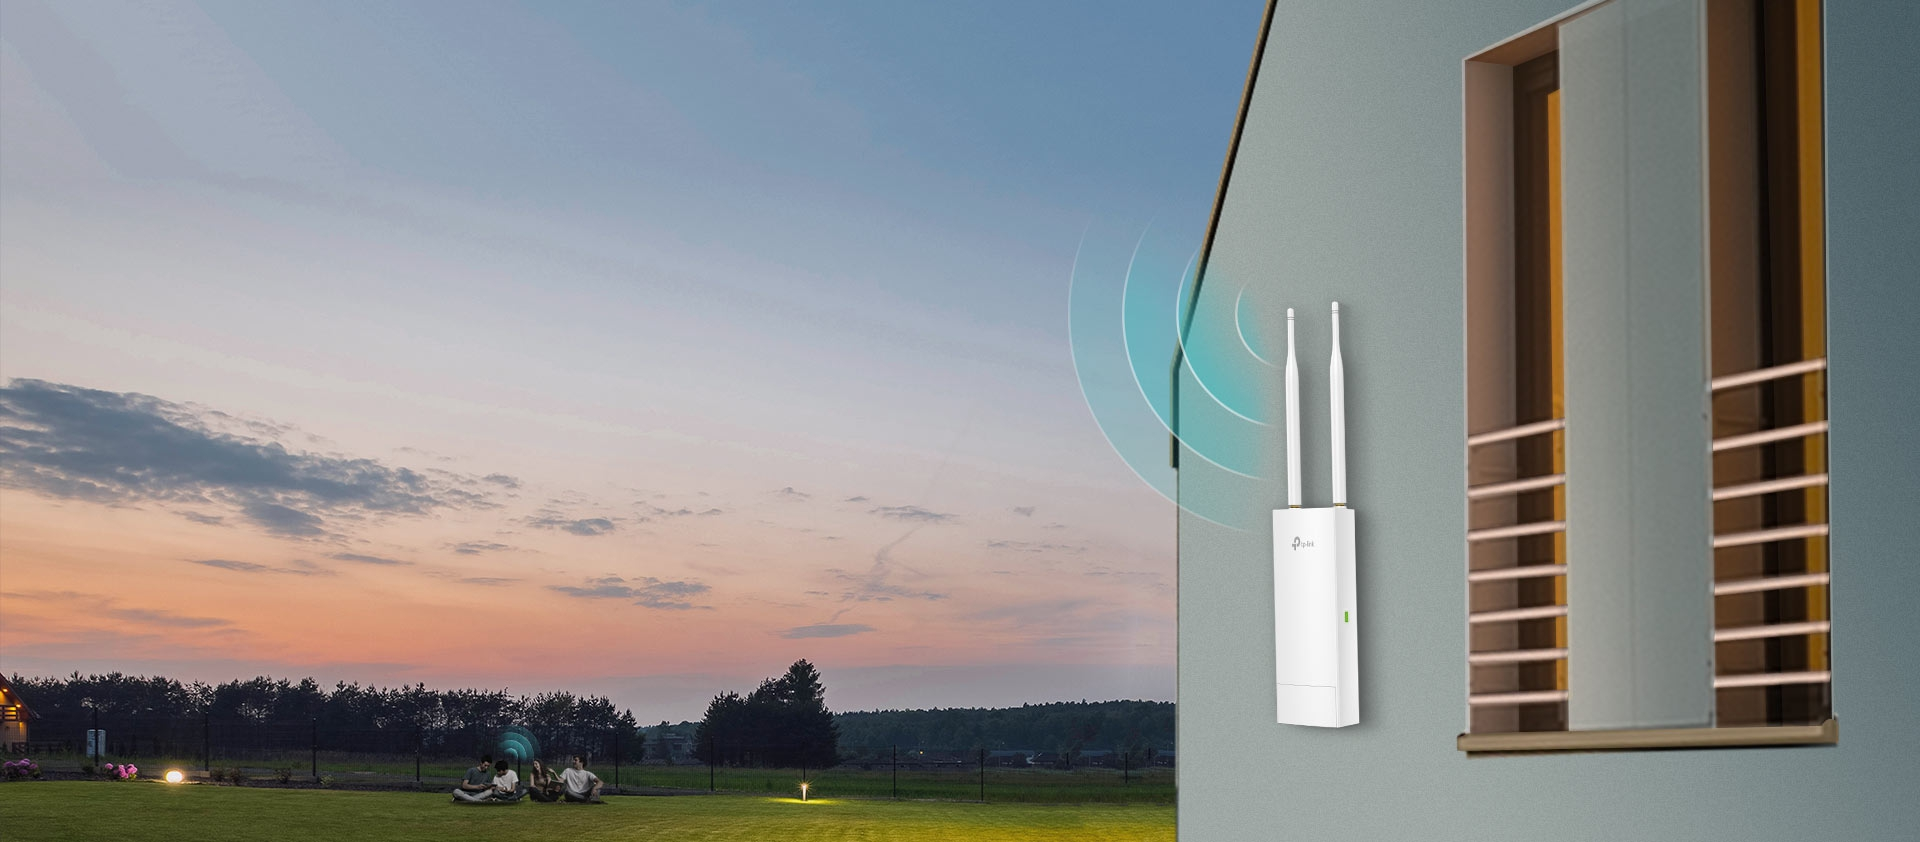 TP-Link 300Mbps Wireless N Outdoor Access Point (CAP300-Outdoor)